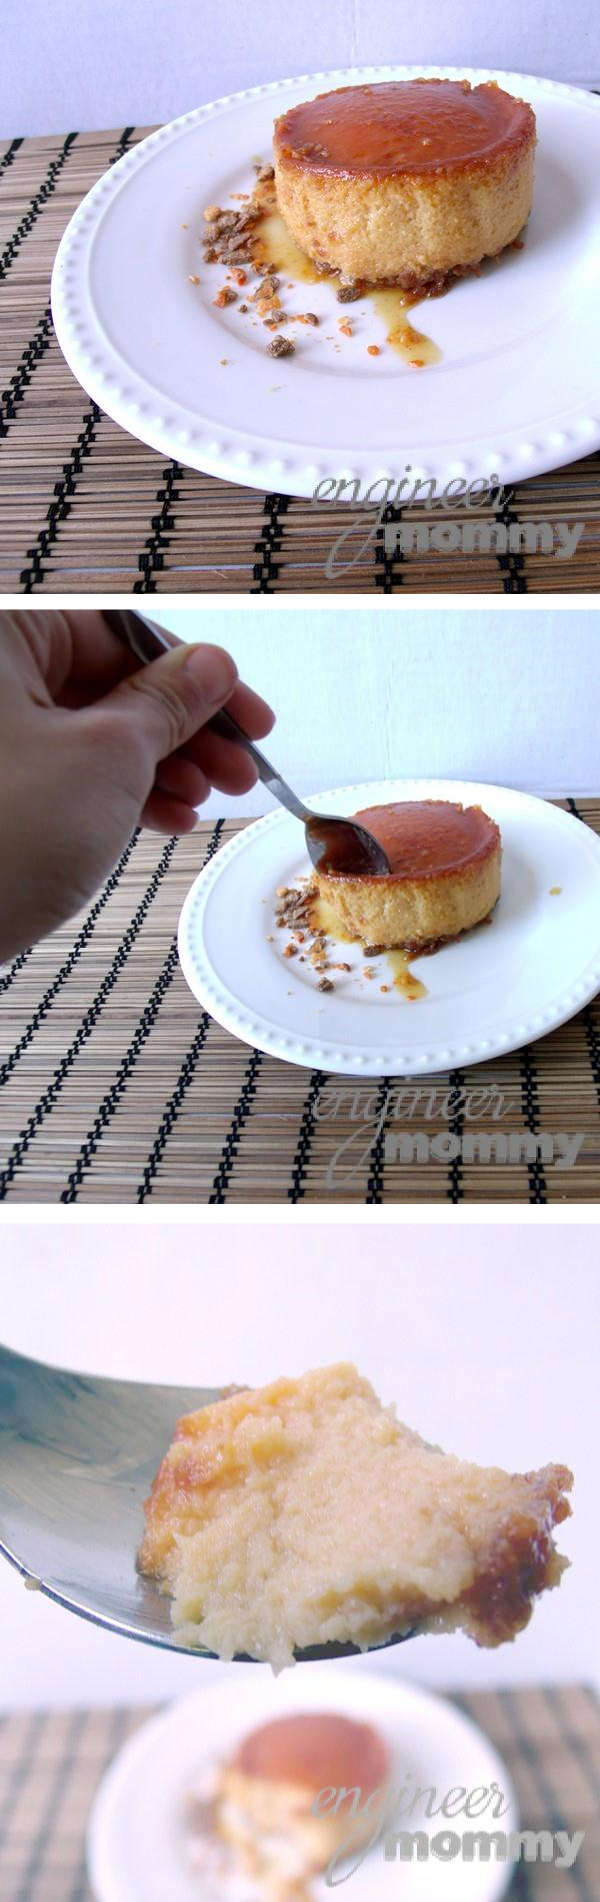 Tasting the BUTTERFINGER® Flan